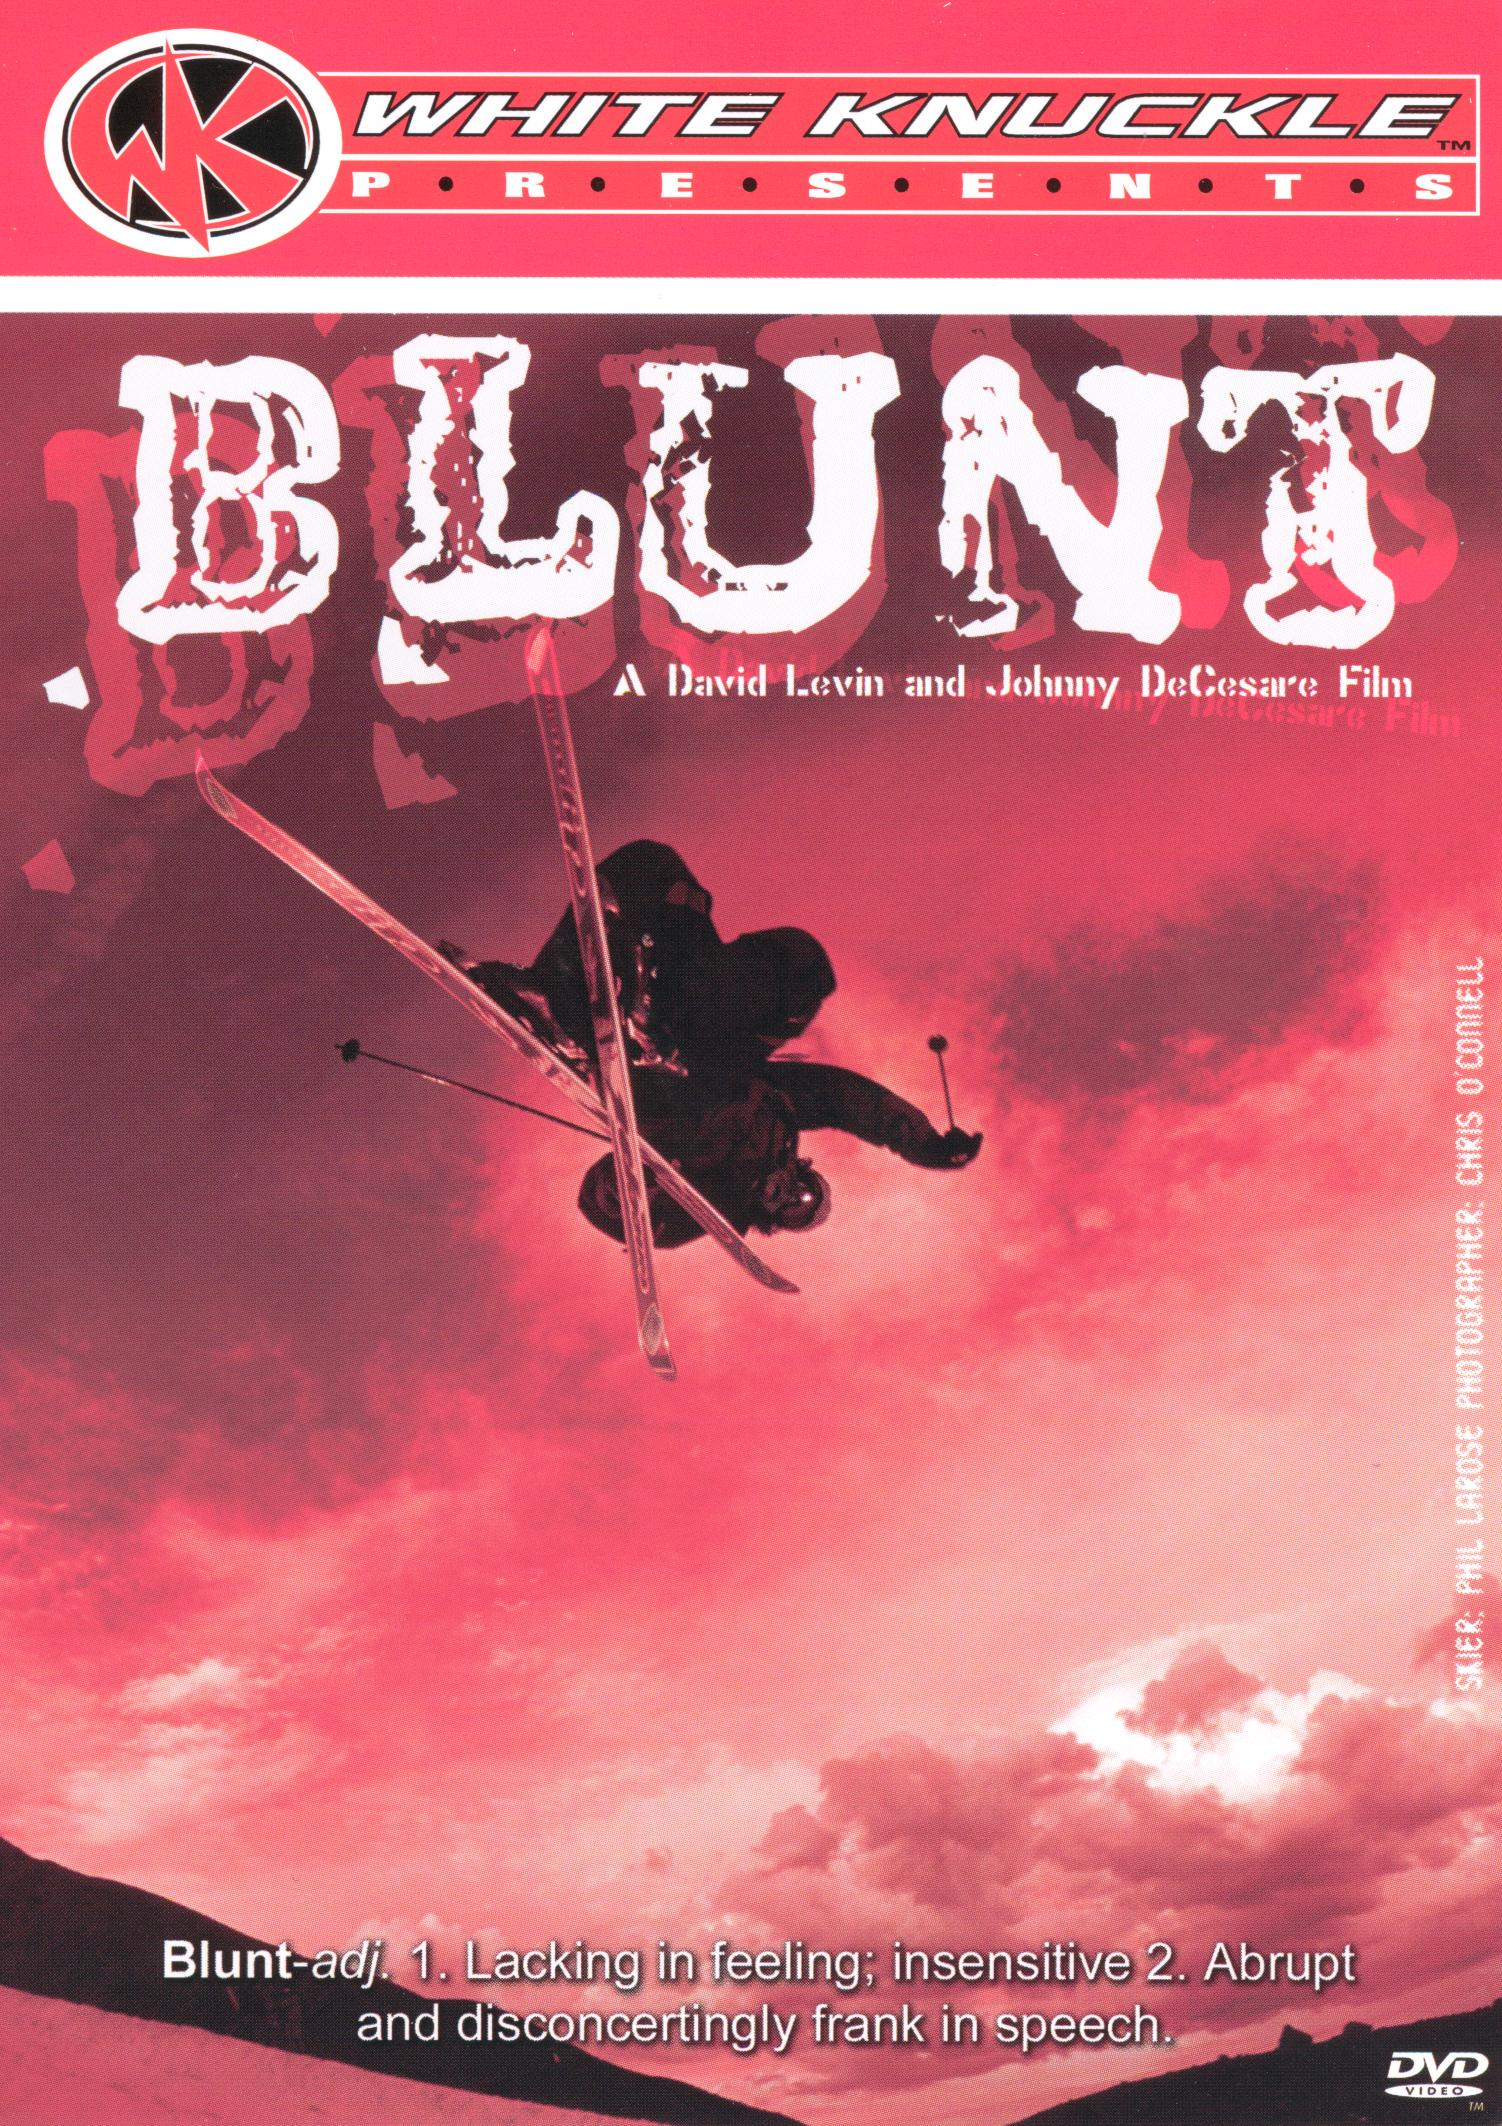 White Knuckle Extreme: Blunt